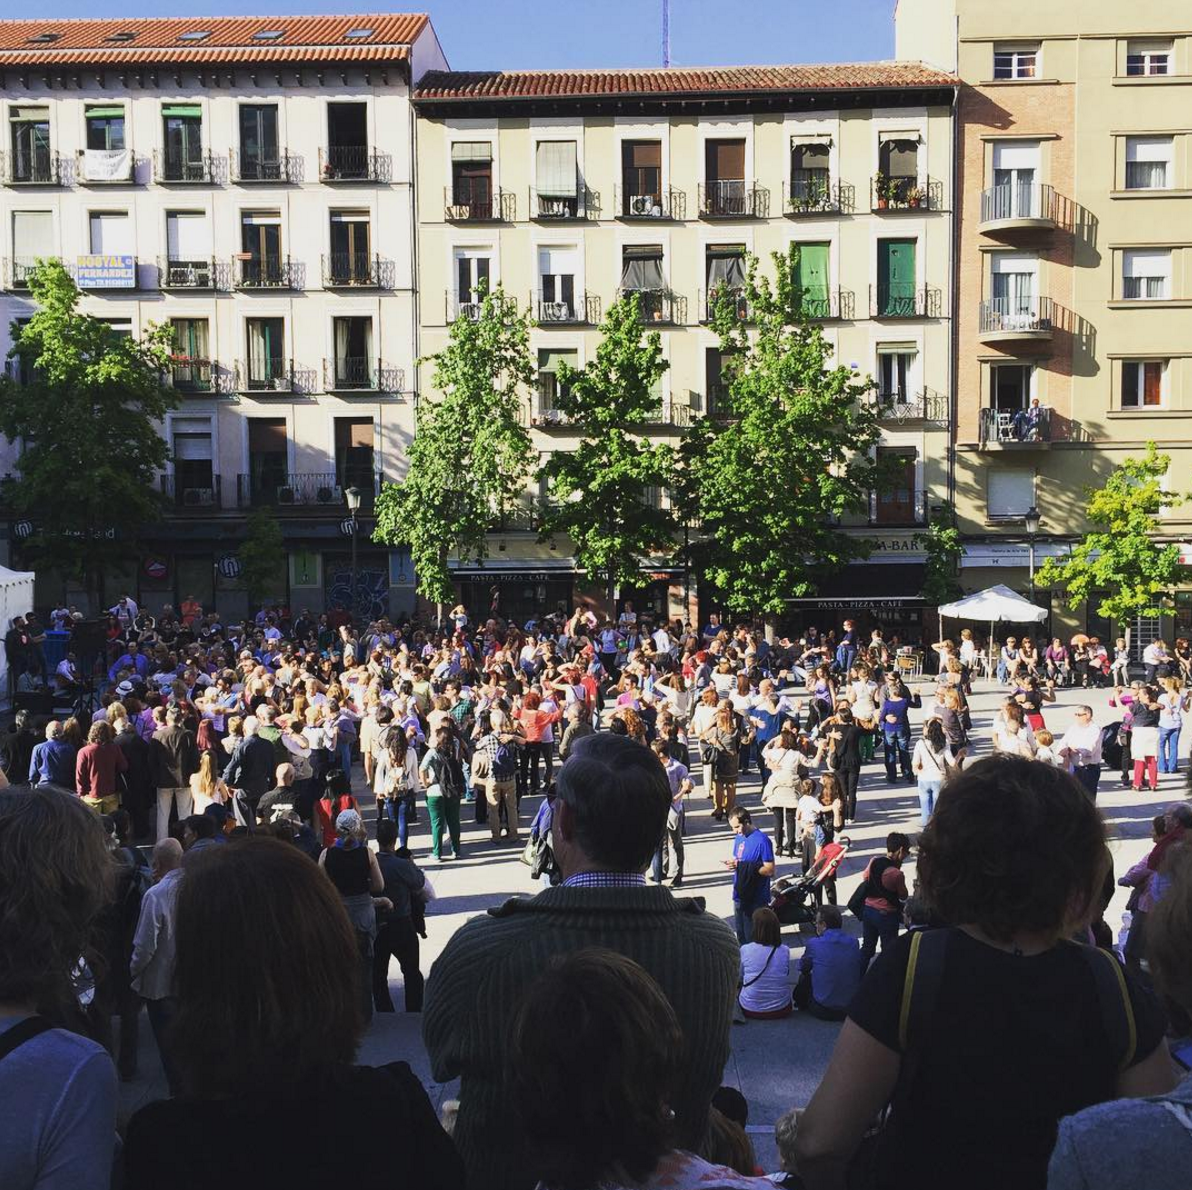 Dancing in the street! Near the Reina Sofia museum during the San Isidro festival.